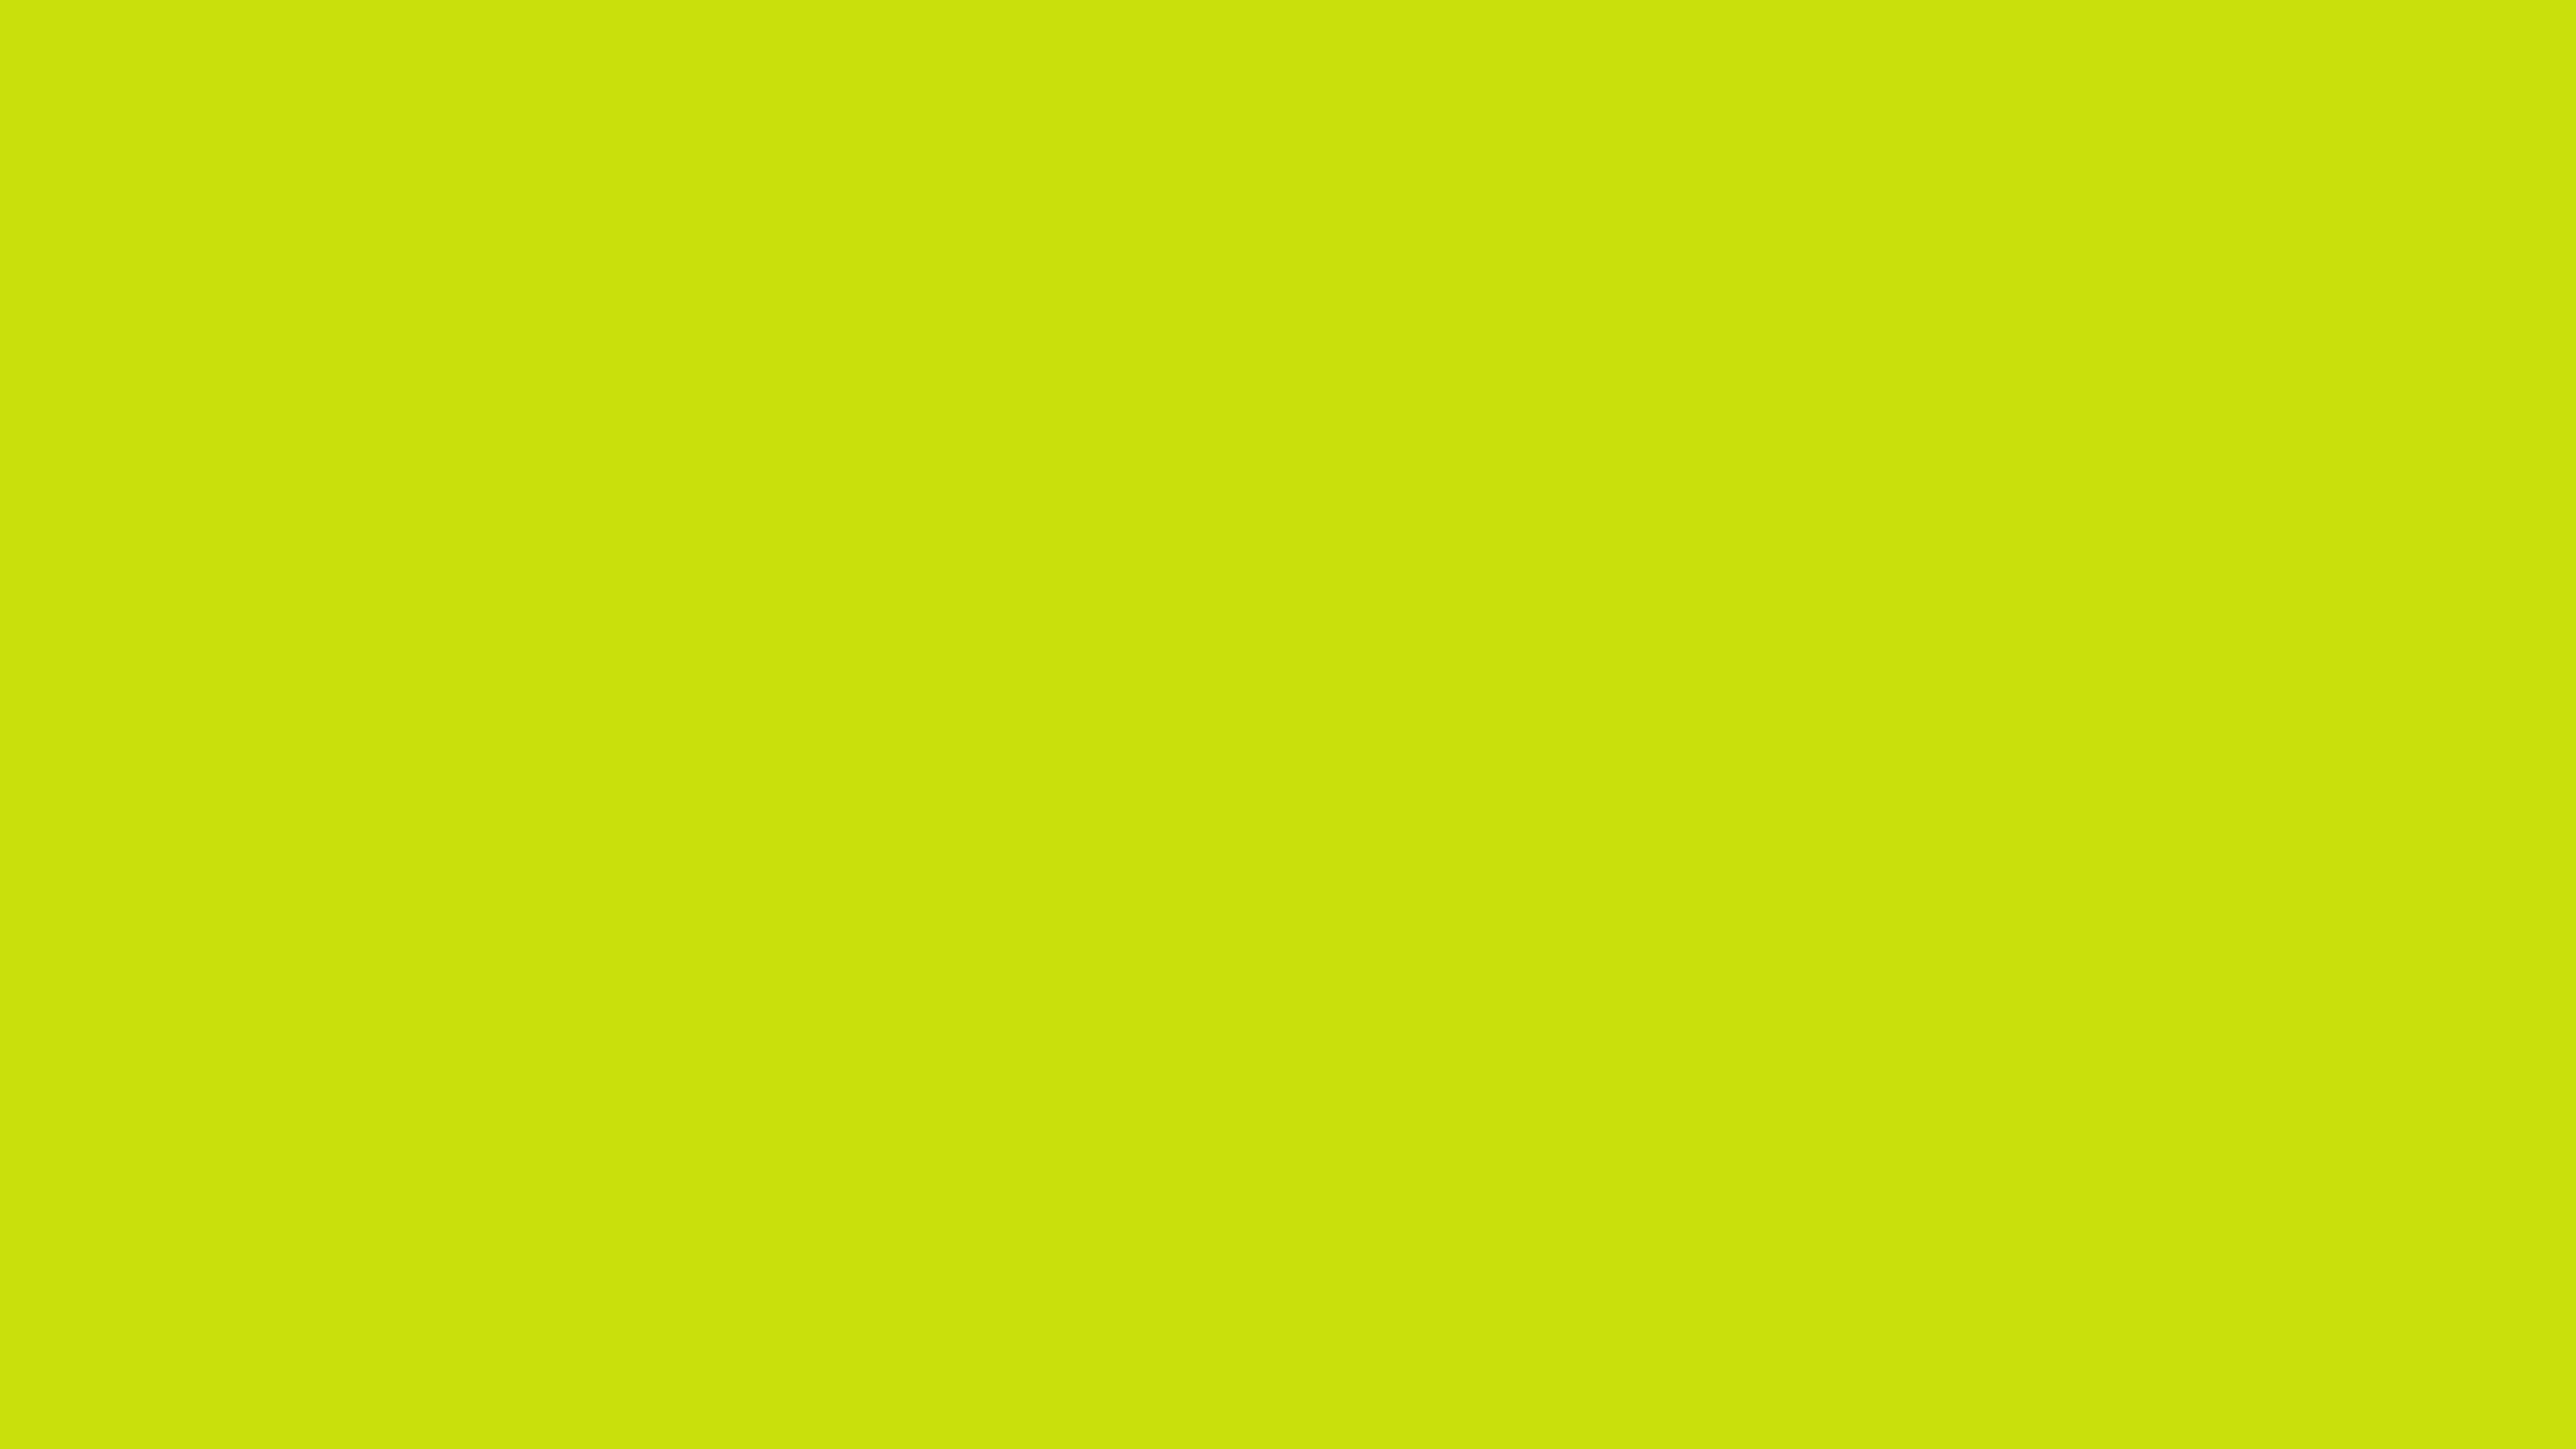 4096x2304 Bitter Lemon Solid Color Background